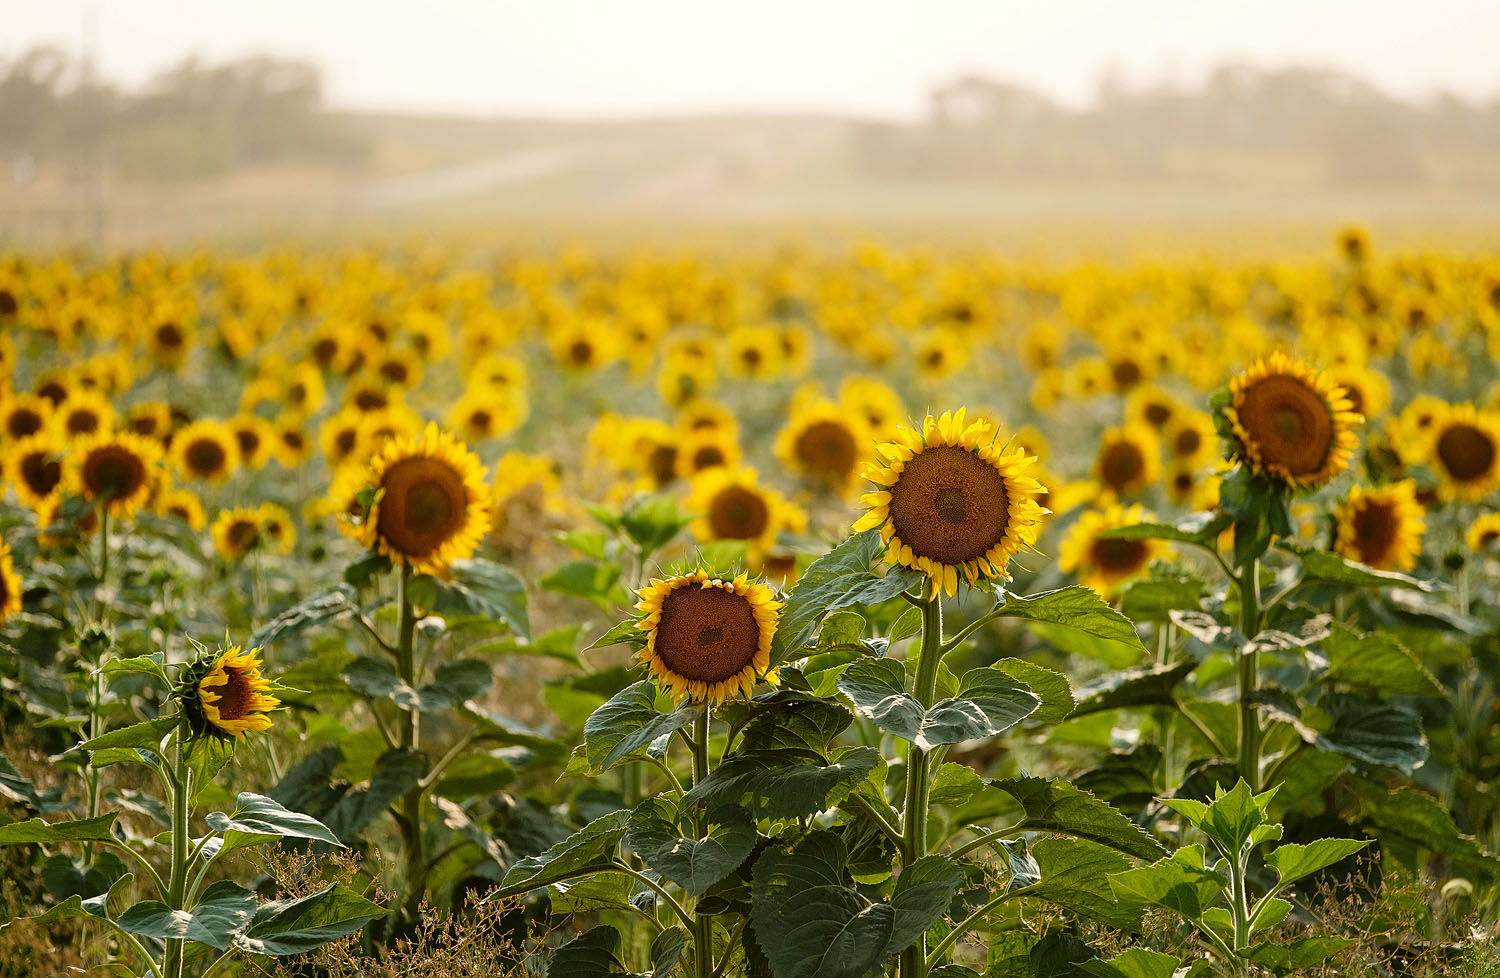 Field of sunflowers in North Dakota